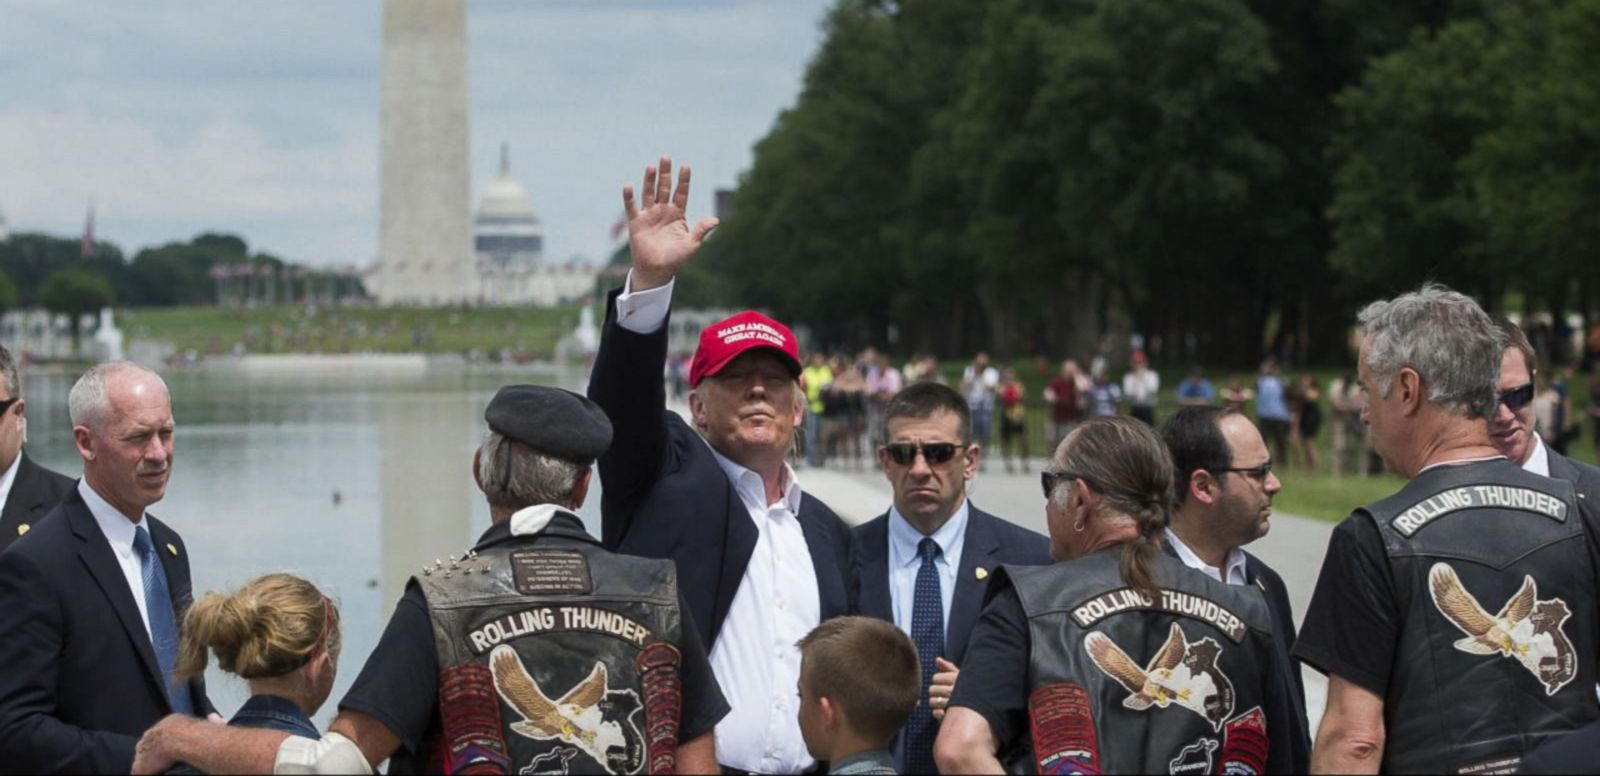 VIDEO: Donald Trump Uses Memorial Day Weekend to Appeal to America's Veterans